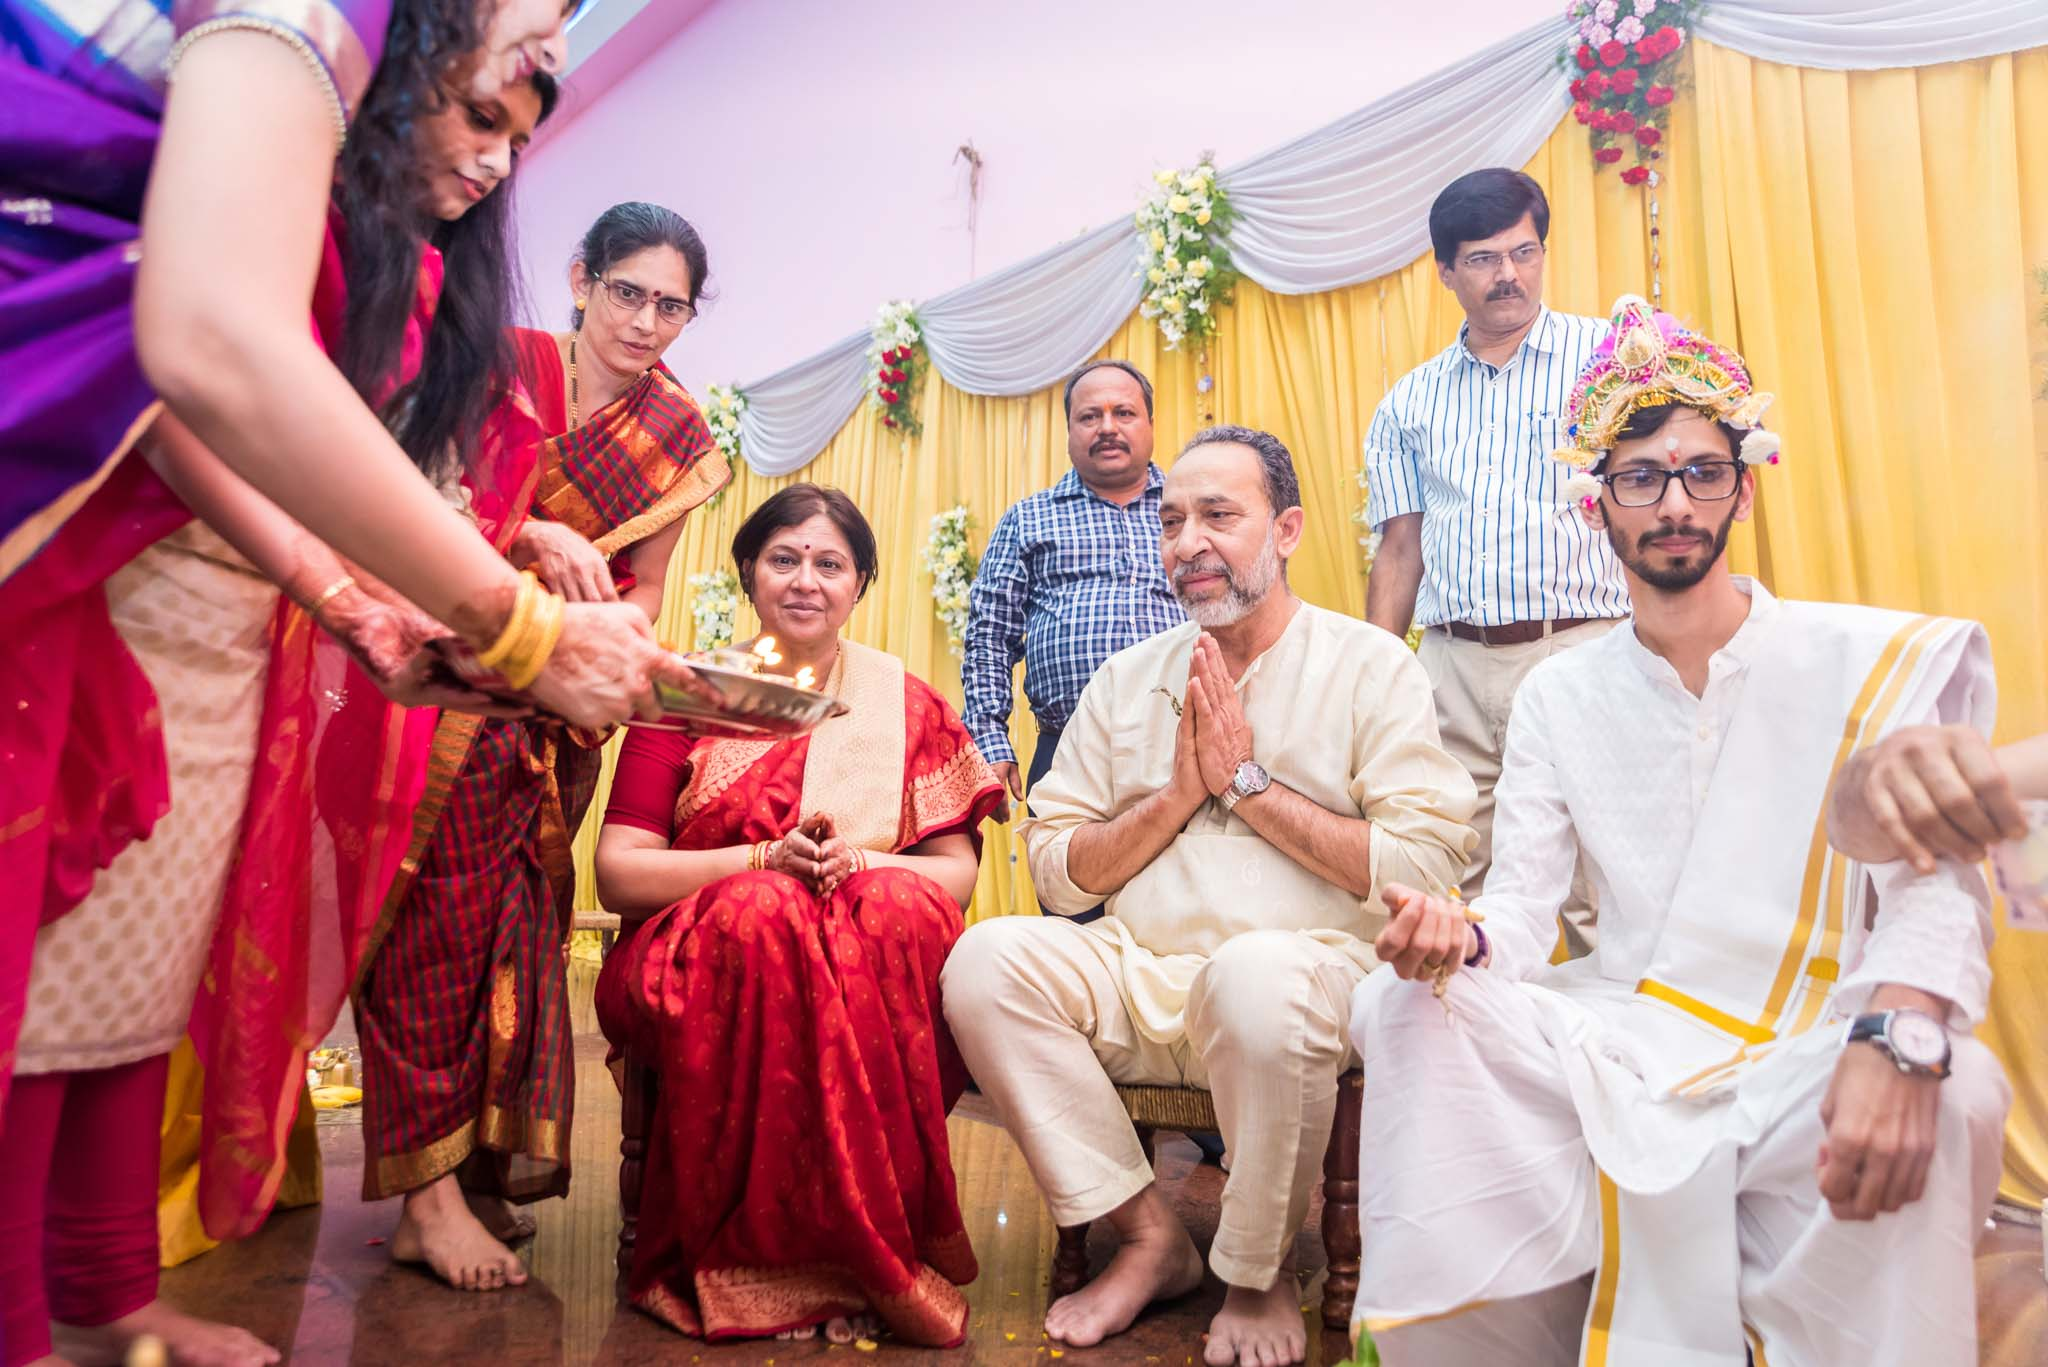 WhatKnot-Candid-Wedding-Photography-Mumbai-Bangalore-106